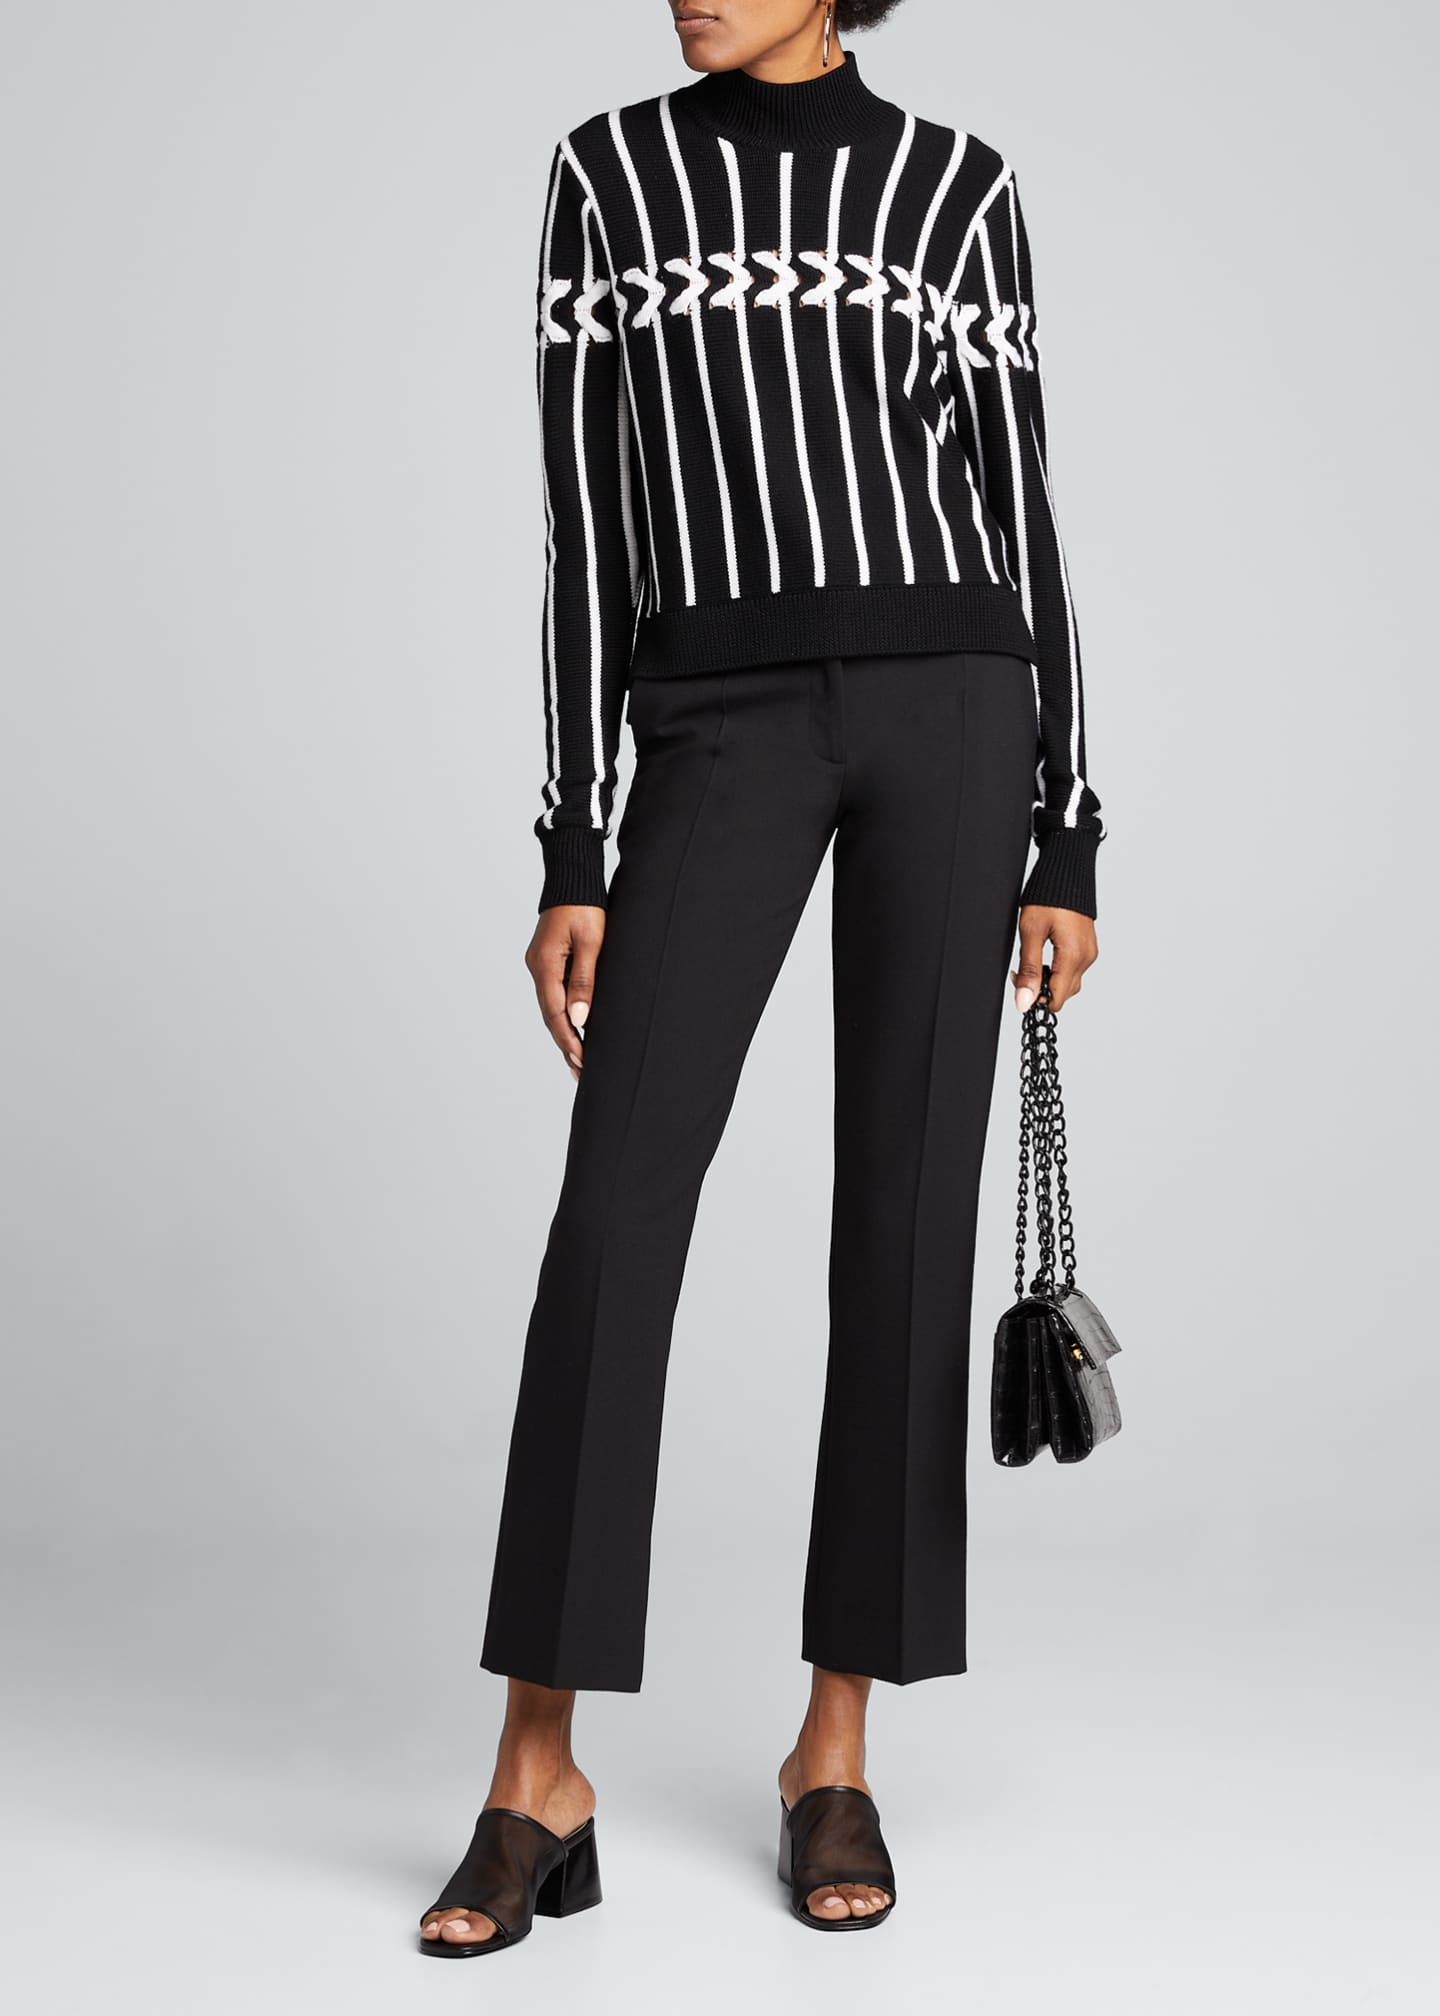 Jonathan Simkhai Lofty Chain Turtleneck Sweater